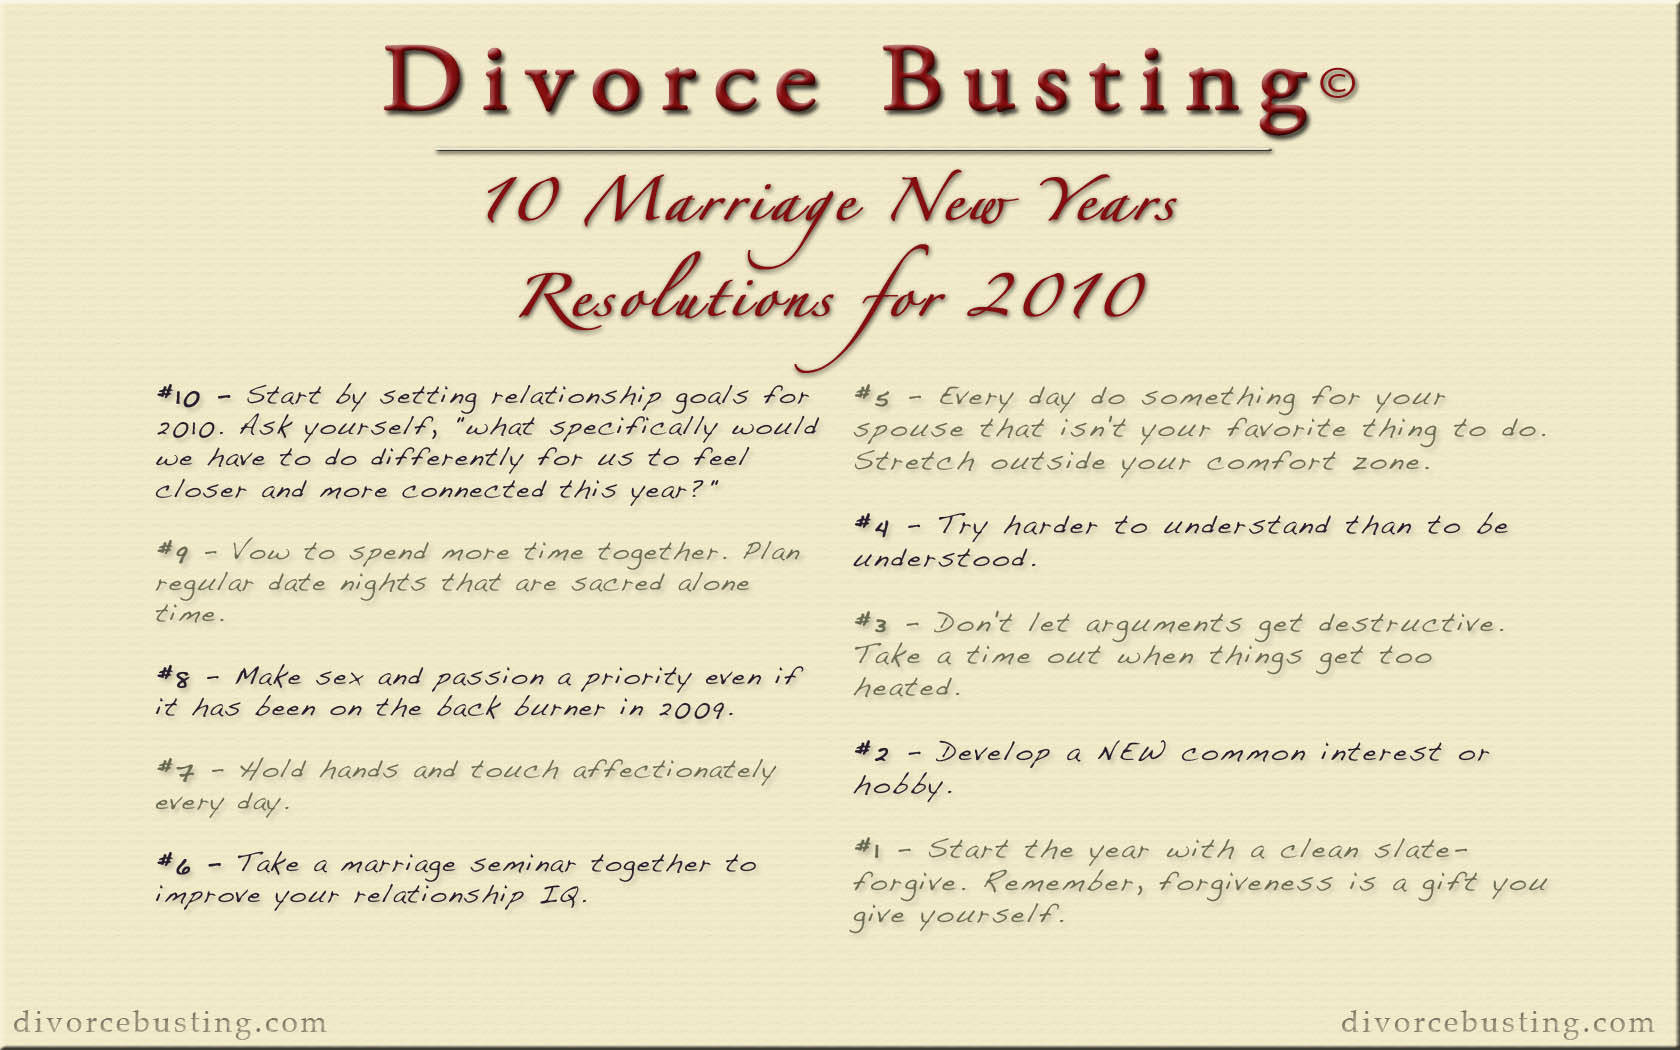 10 Marriage New Years Resolution